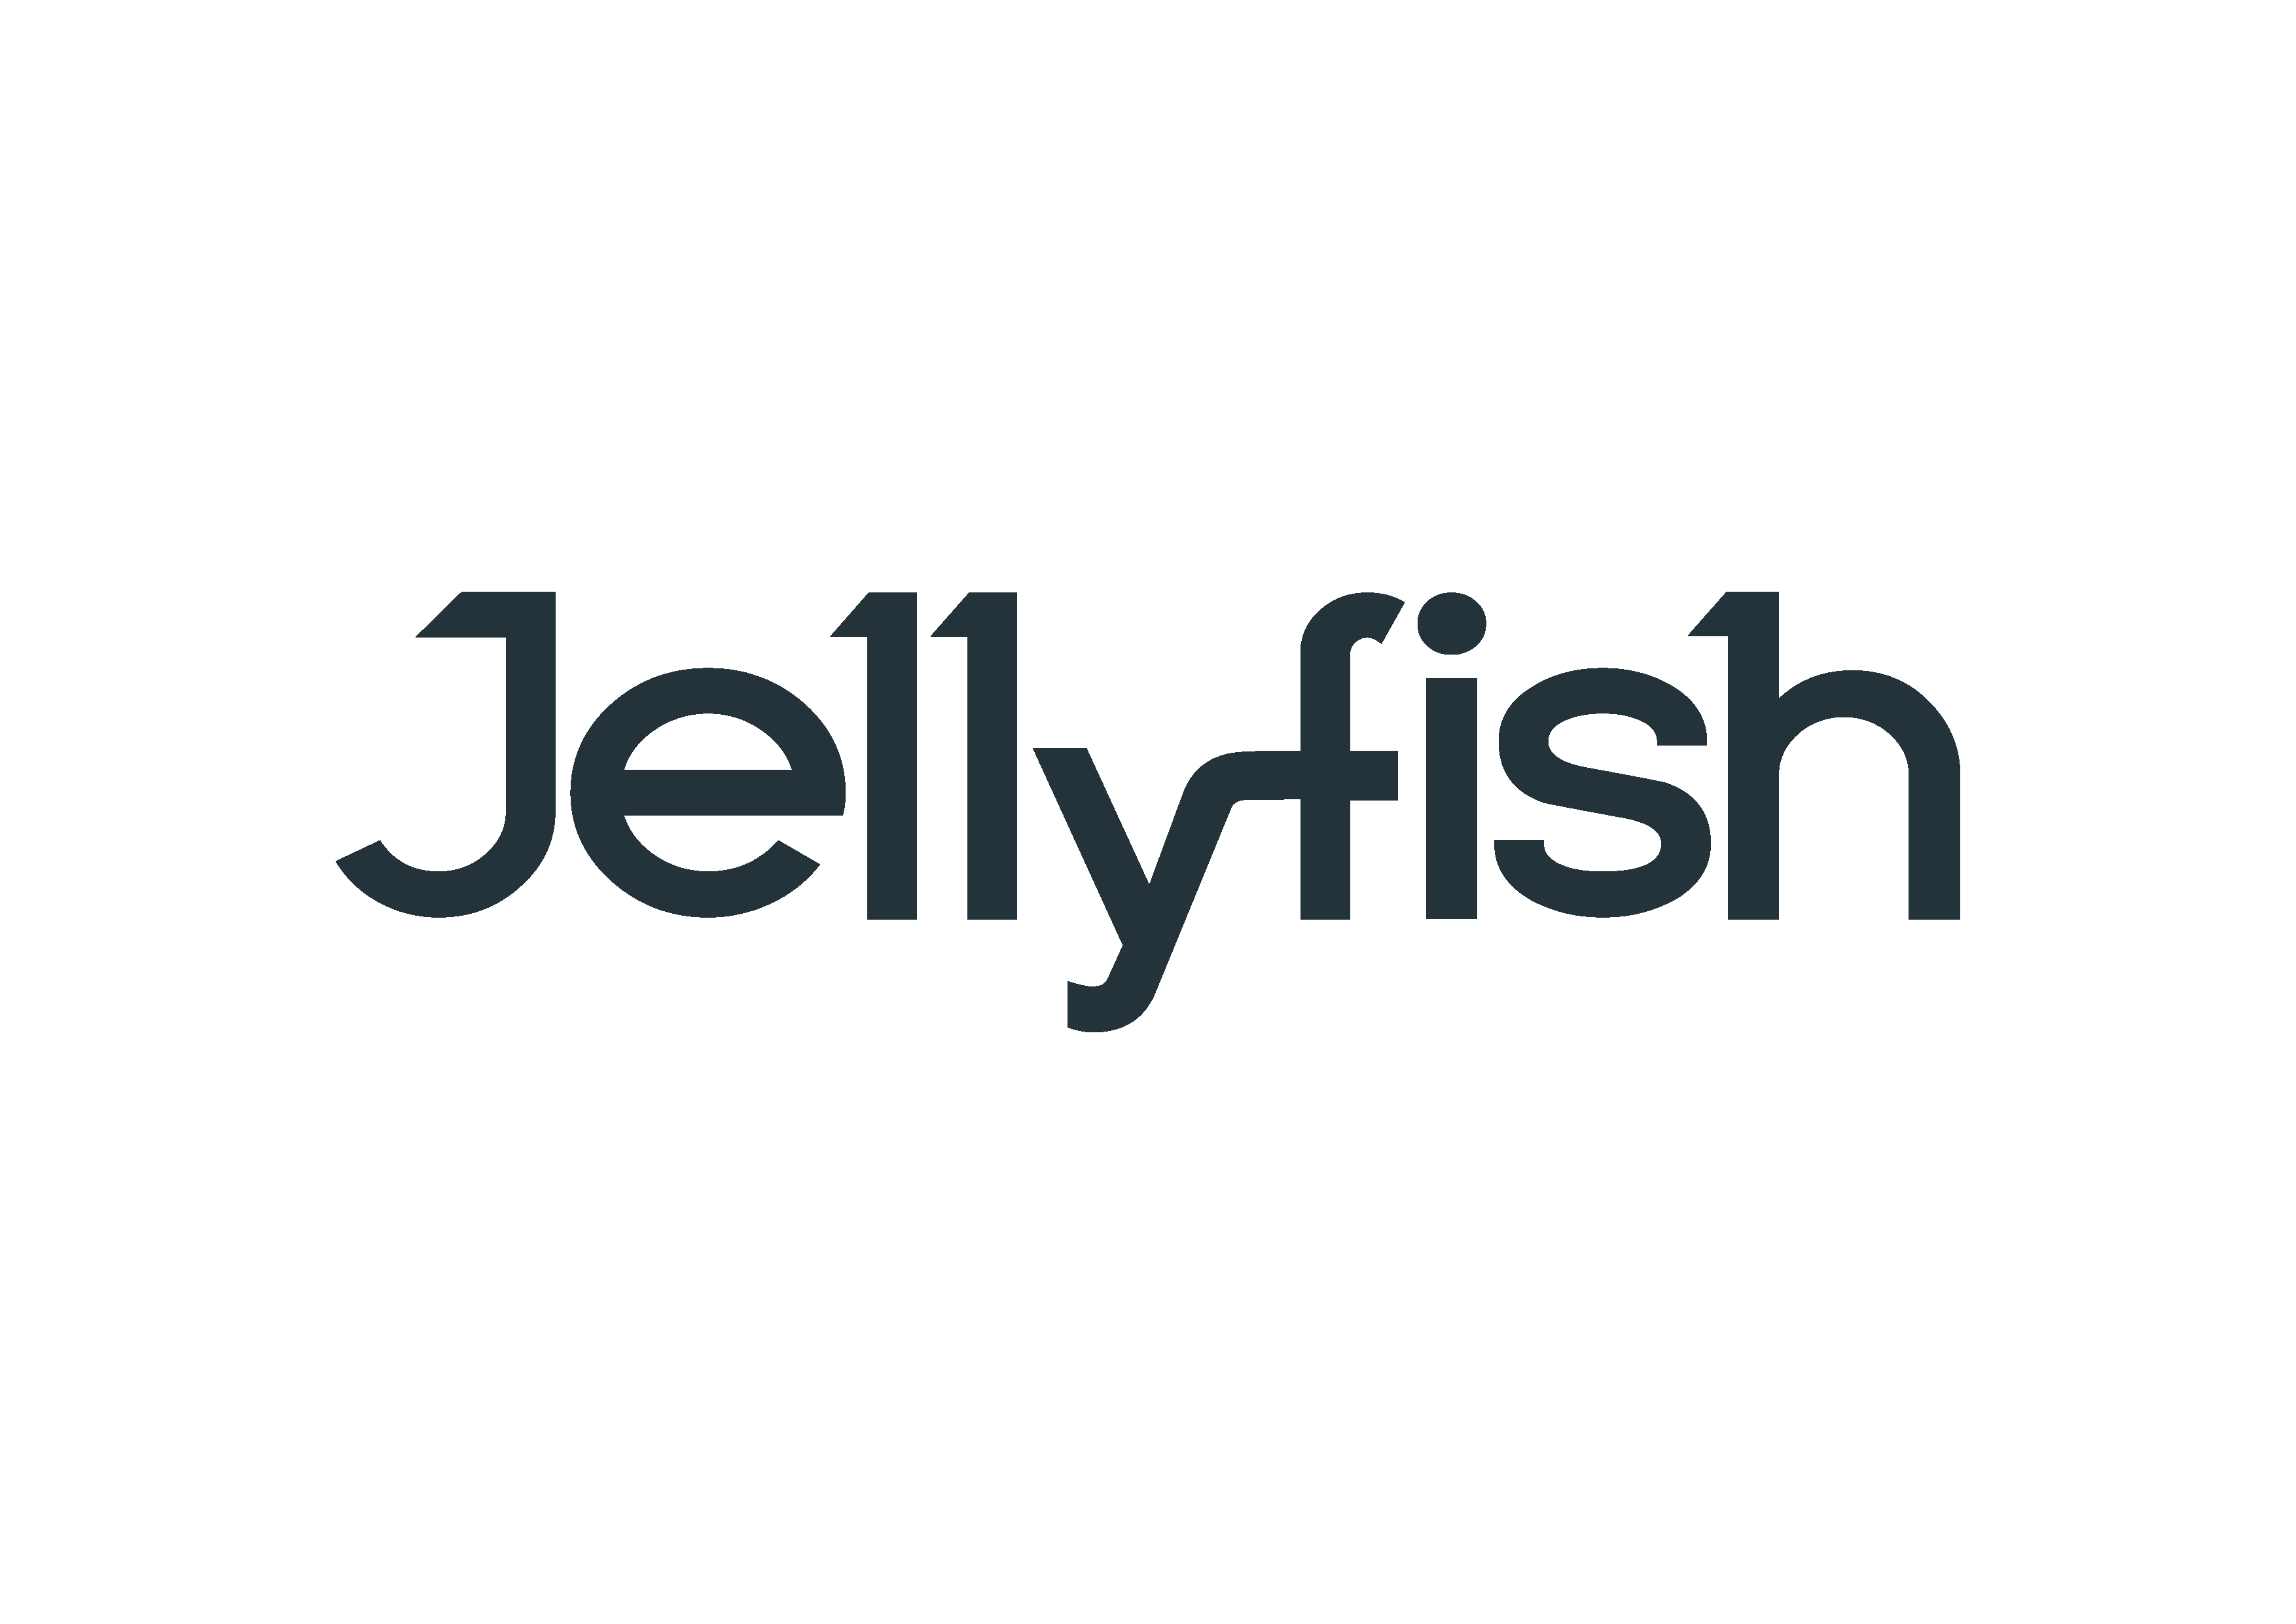 https://www.bheroes.it/wp-content/uploads/2021/06/logo-Jellyfish.png